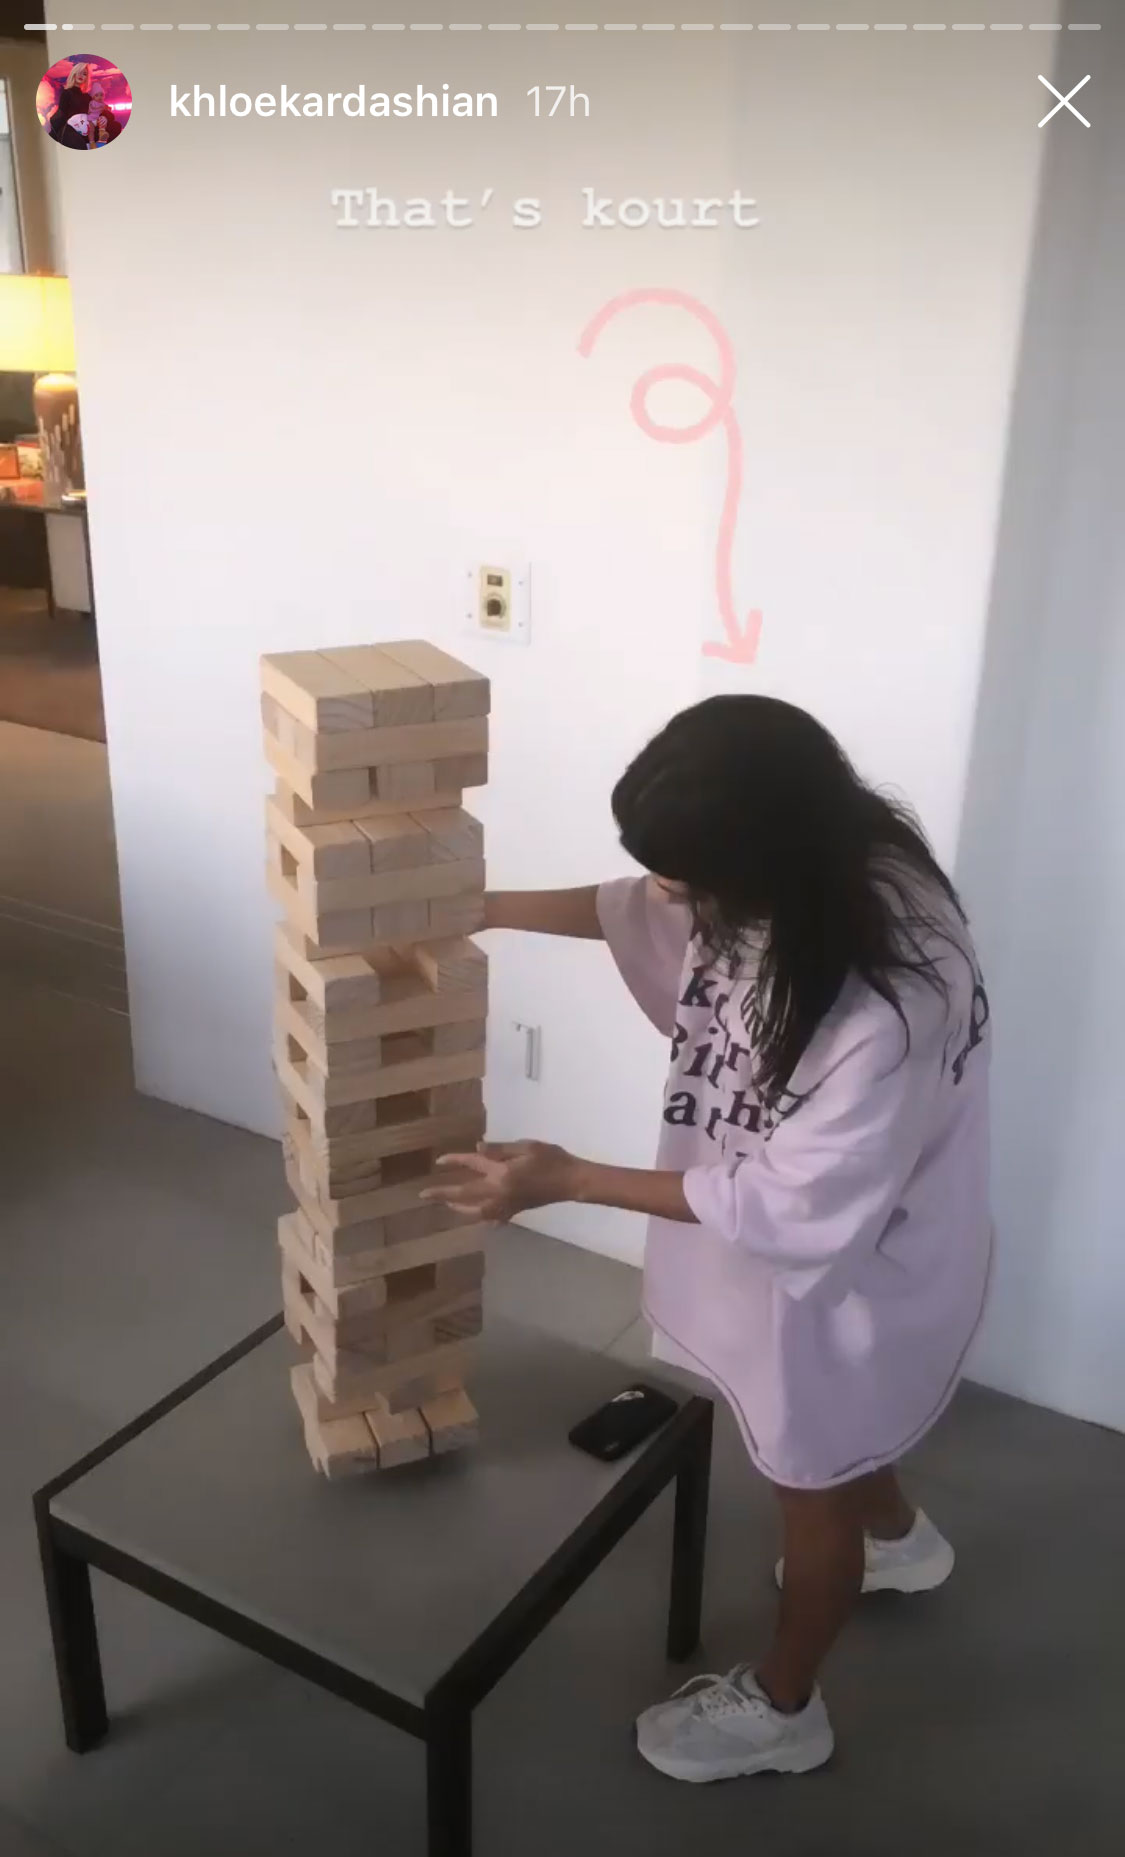 Kourtney Kardashian Kardashian Easter - Khloé shared a photo of Kourtney who was dwarfed by what looked like a huge Jenga game.